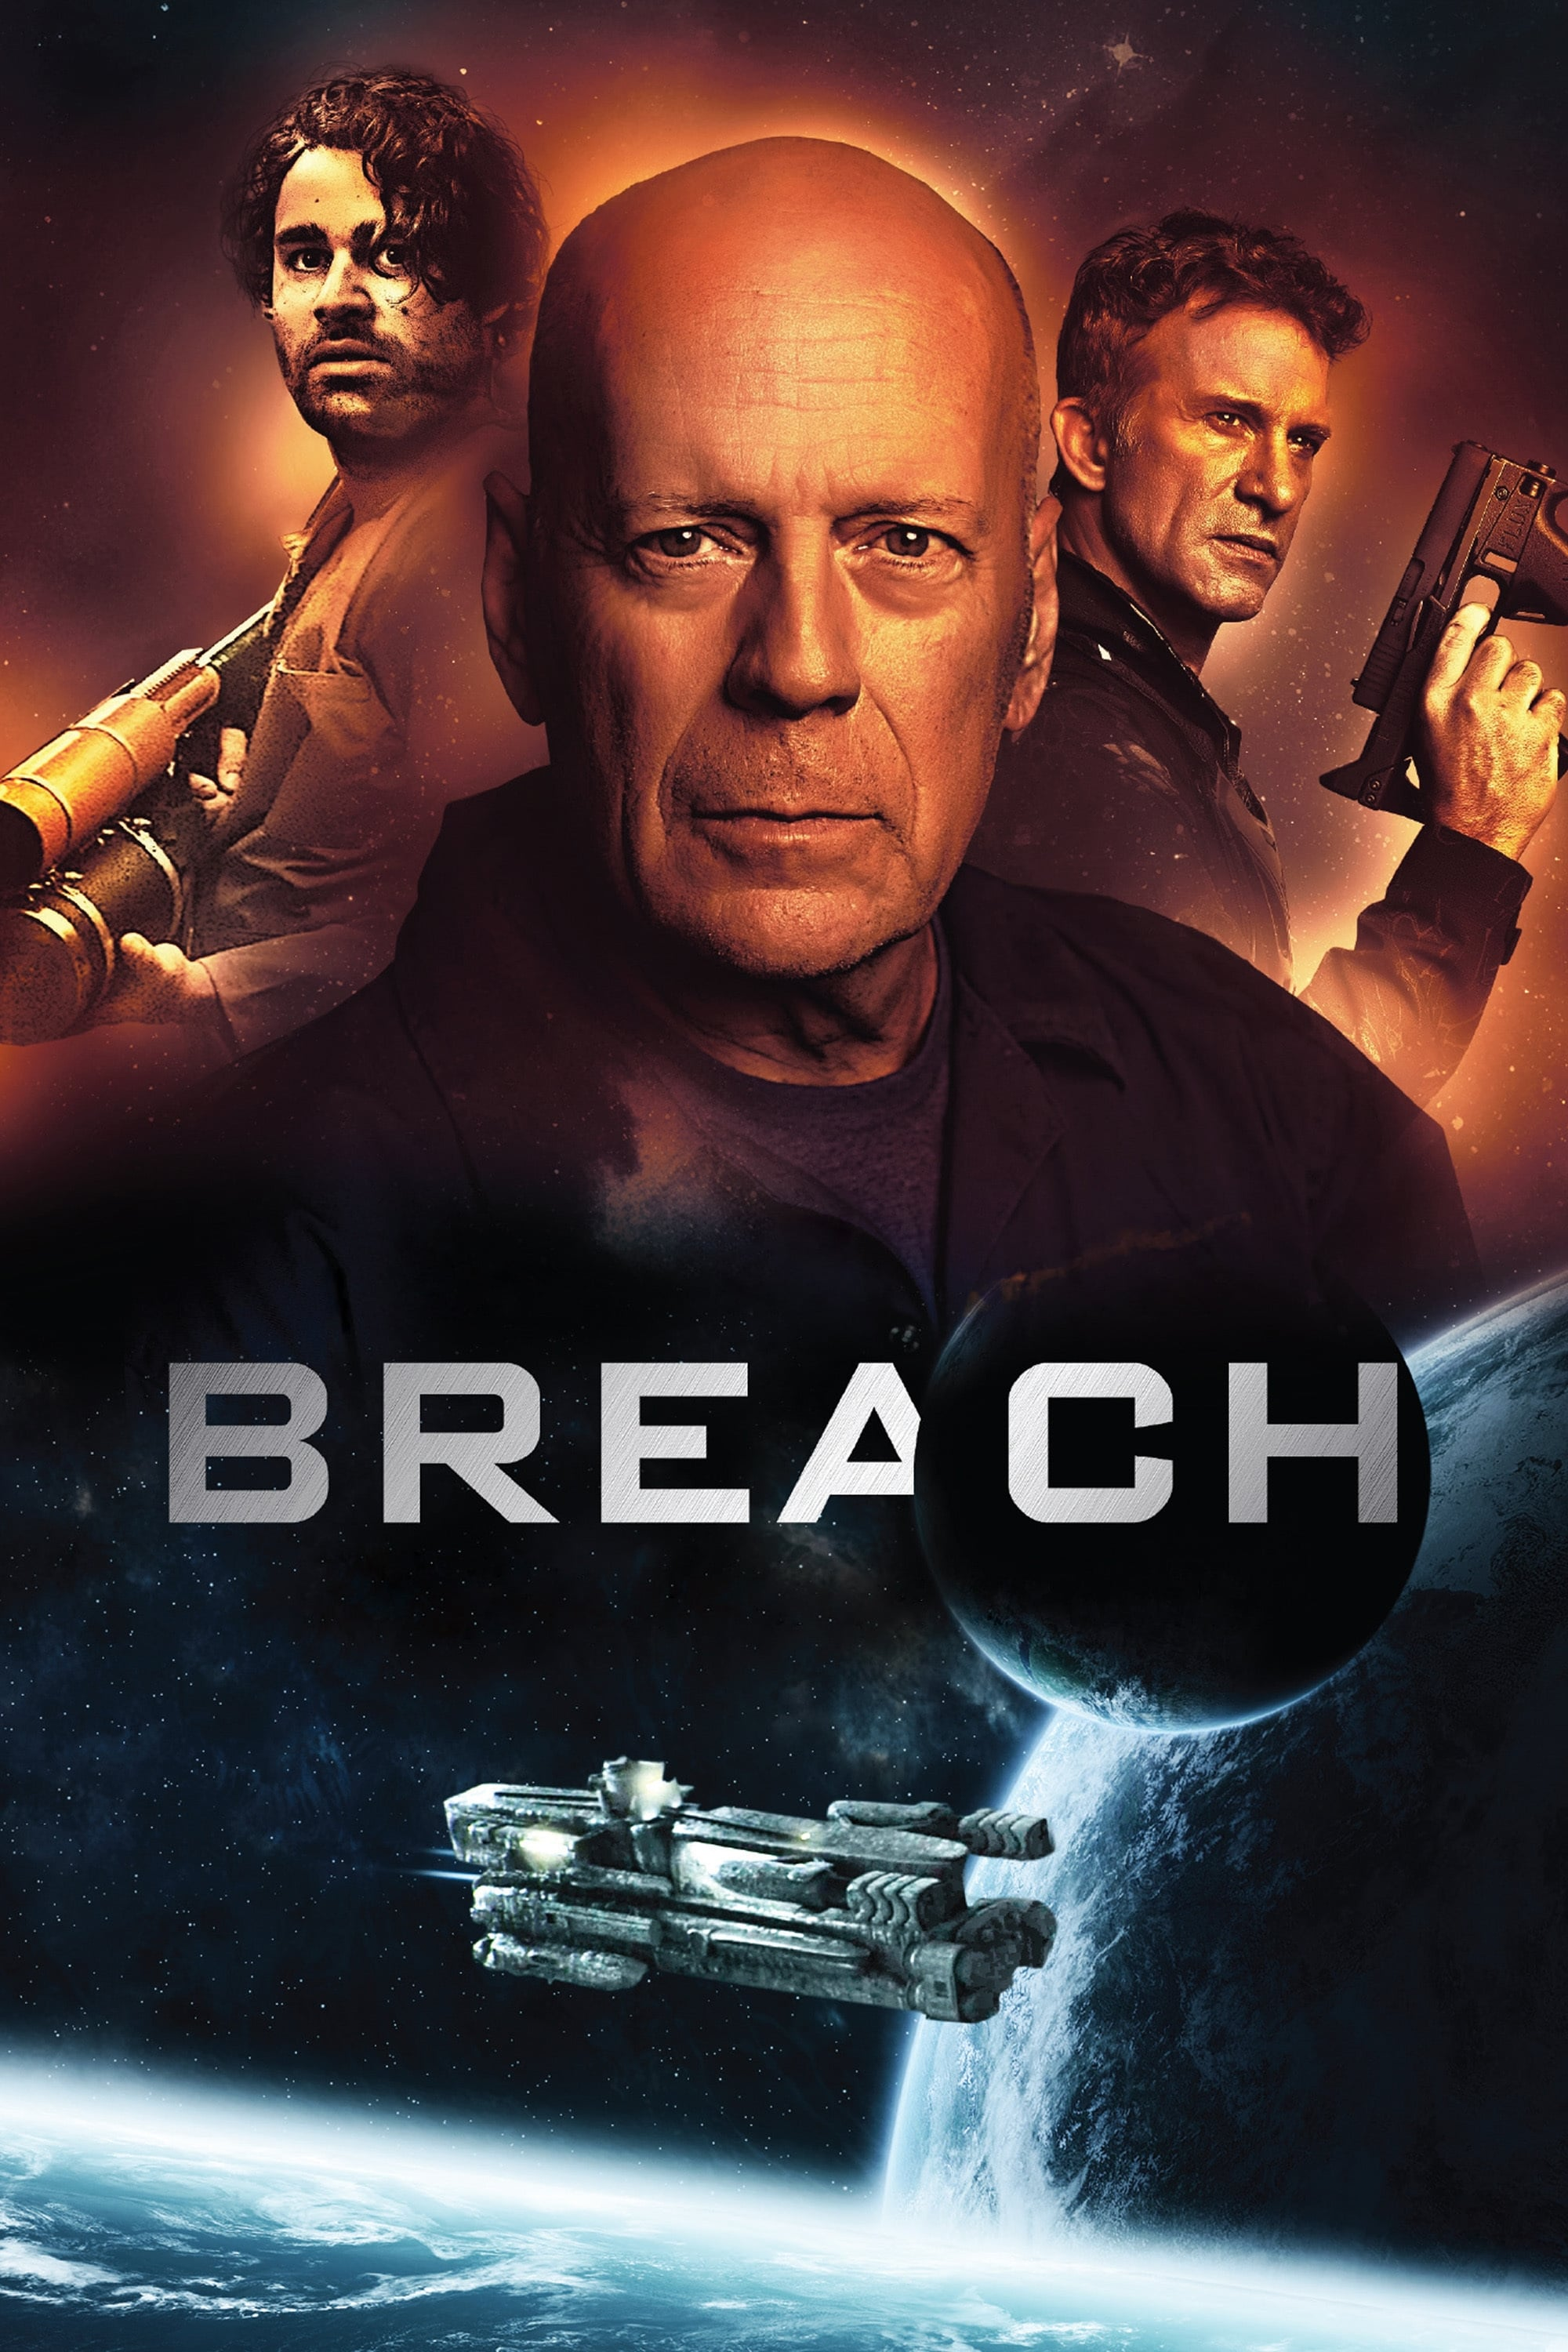 image for Breach